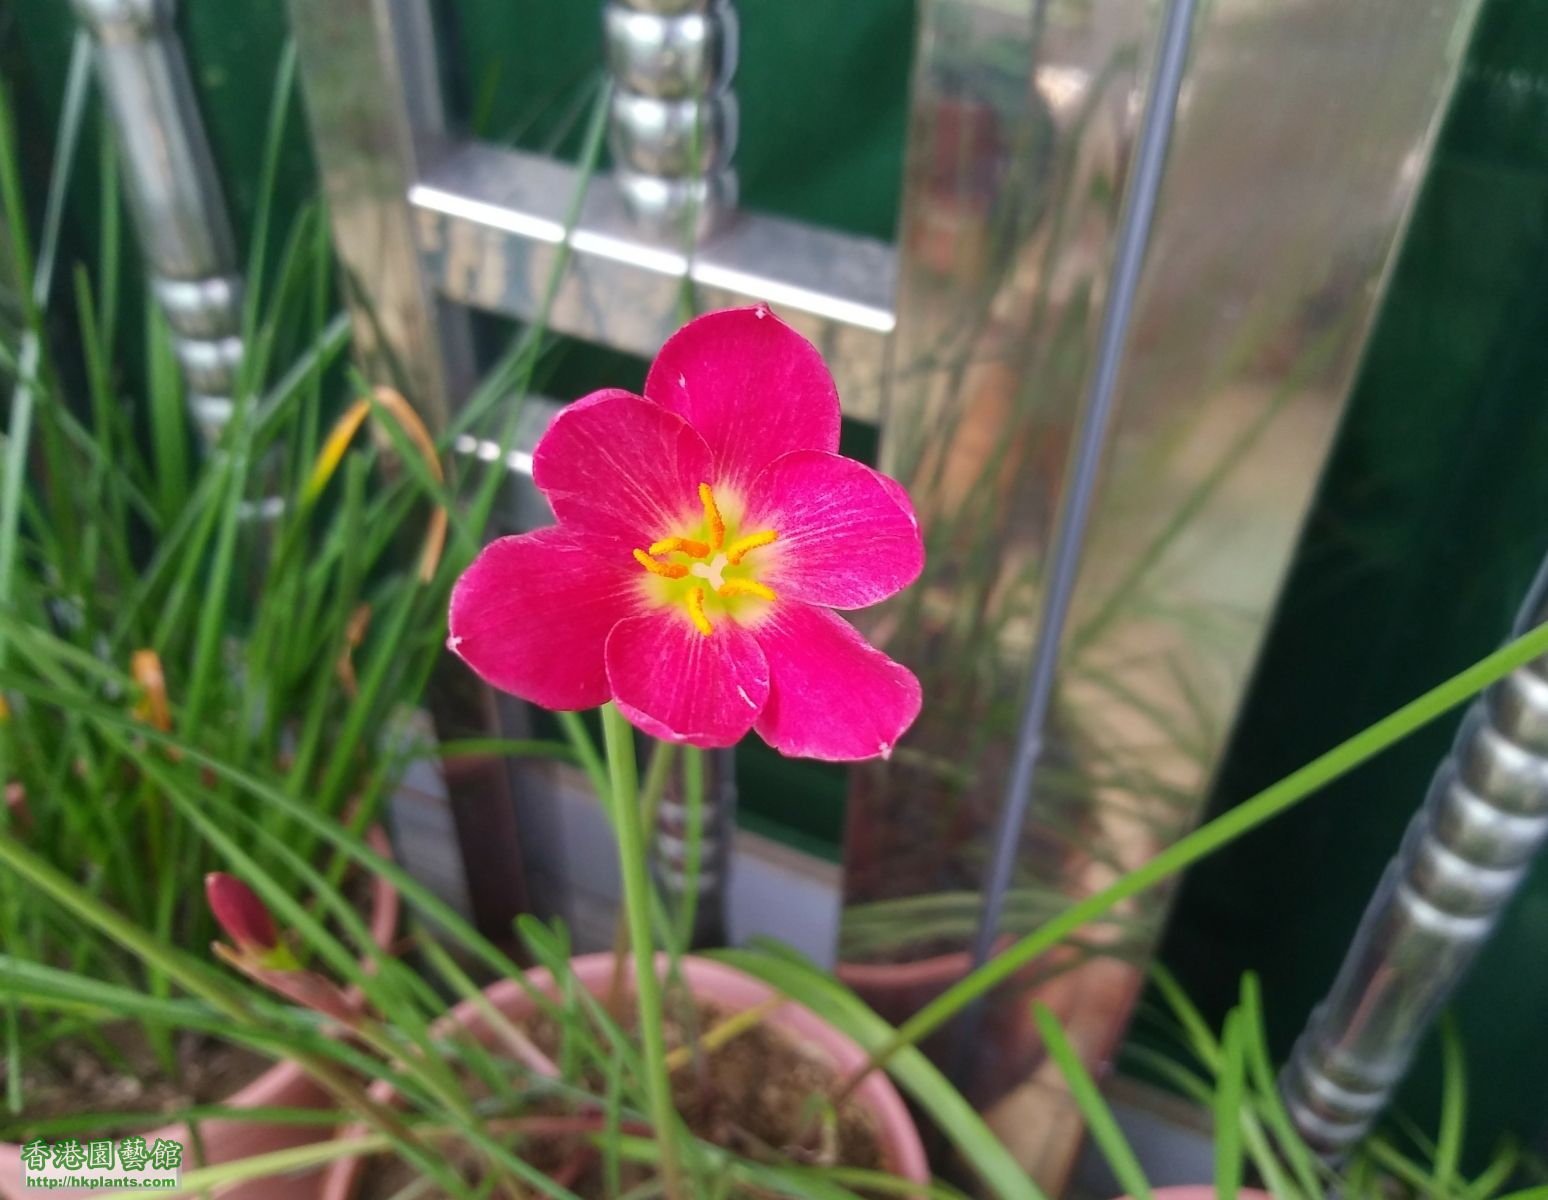 Zephyranthes katherinae 'Jacala Red'-種子-2018-008.jpg